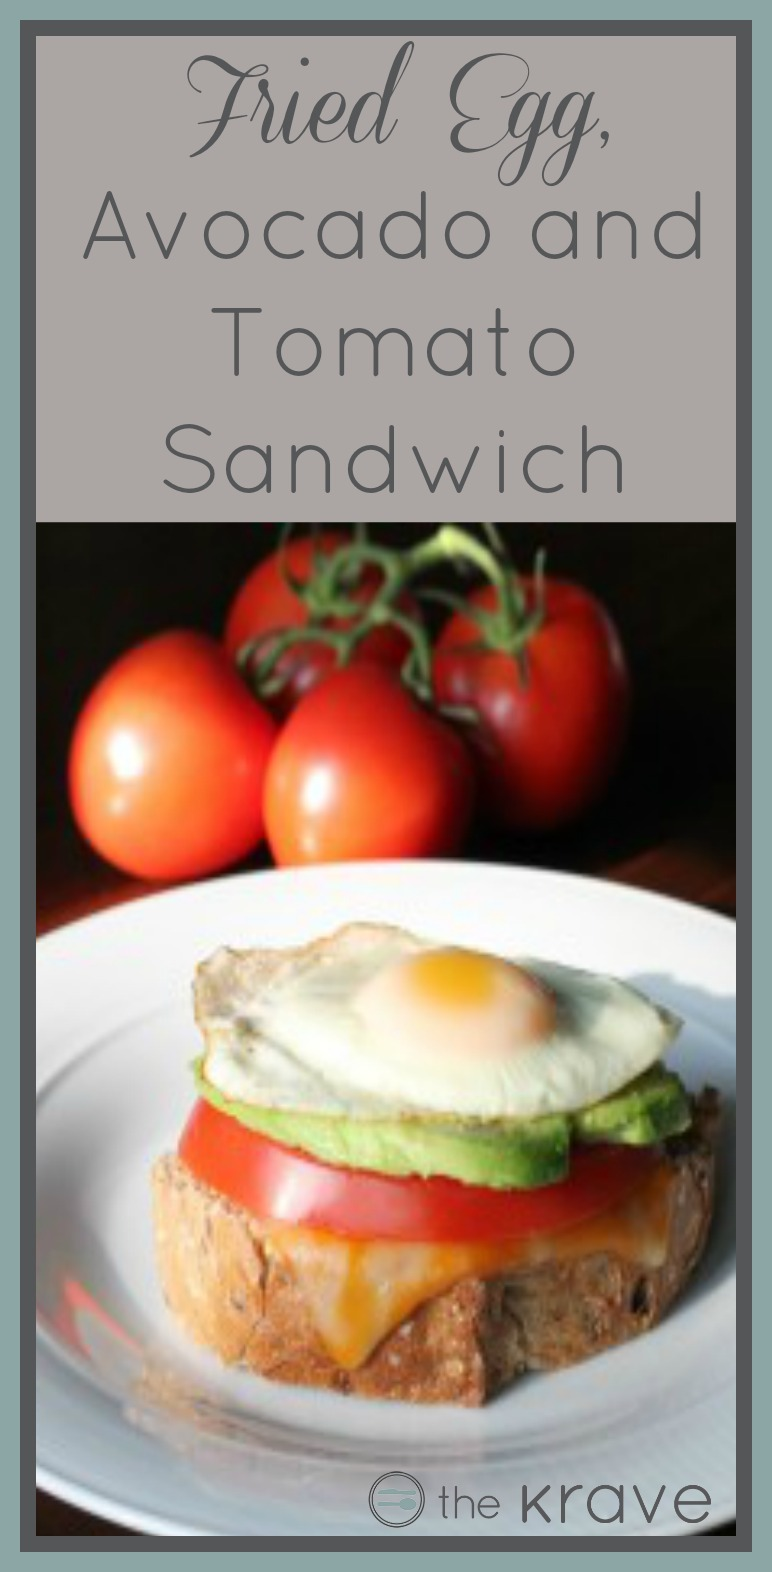 fried-egg-avocado-tomato-sandwich-thekrave